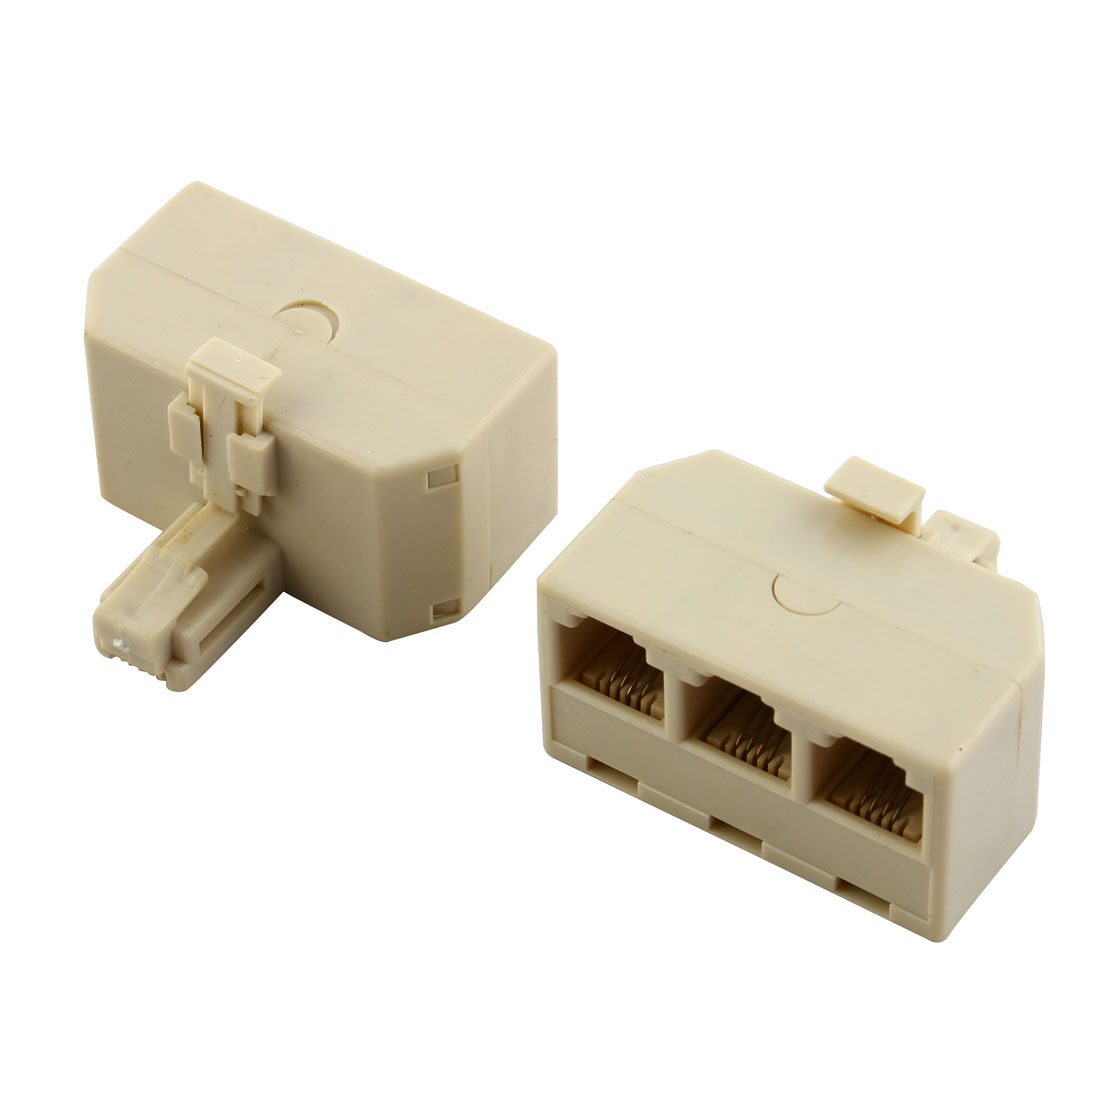 2 Pcs Male to 3 Female RJ11 3 Way Adapter Splitter for Telephone